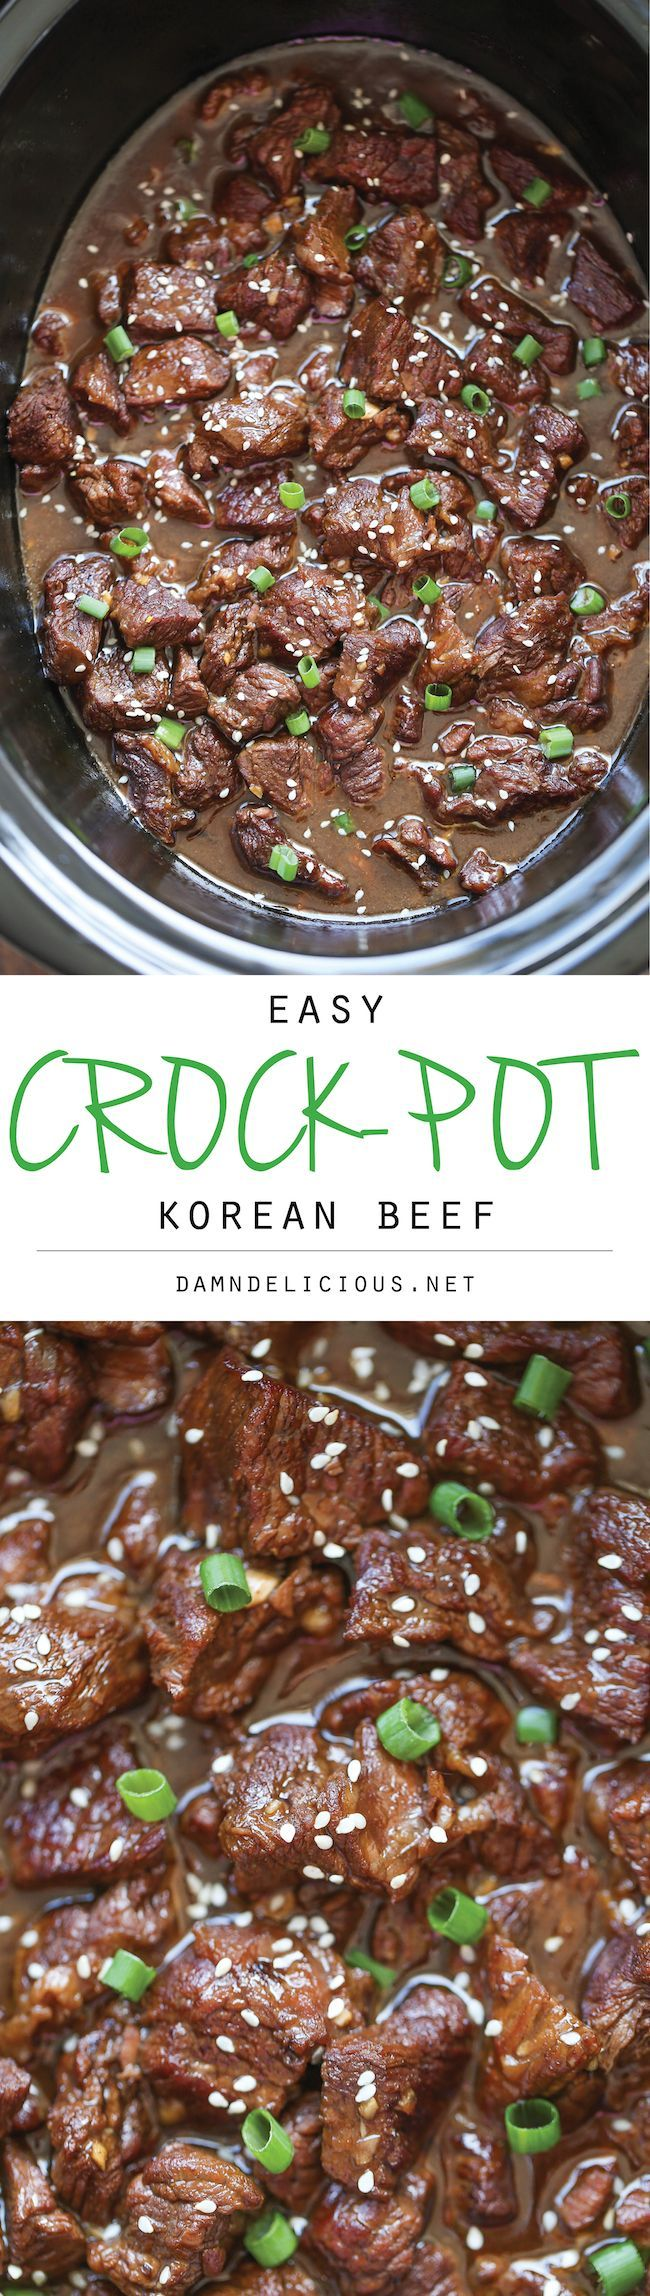 Slow Cooker Korean Beef - Amazingly tender, flavorful Korean beef easily made…